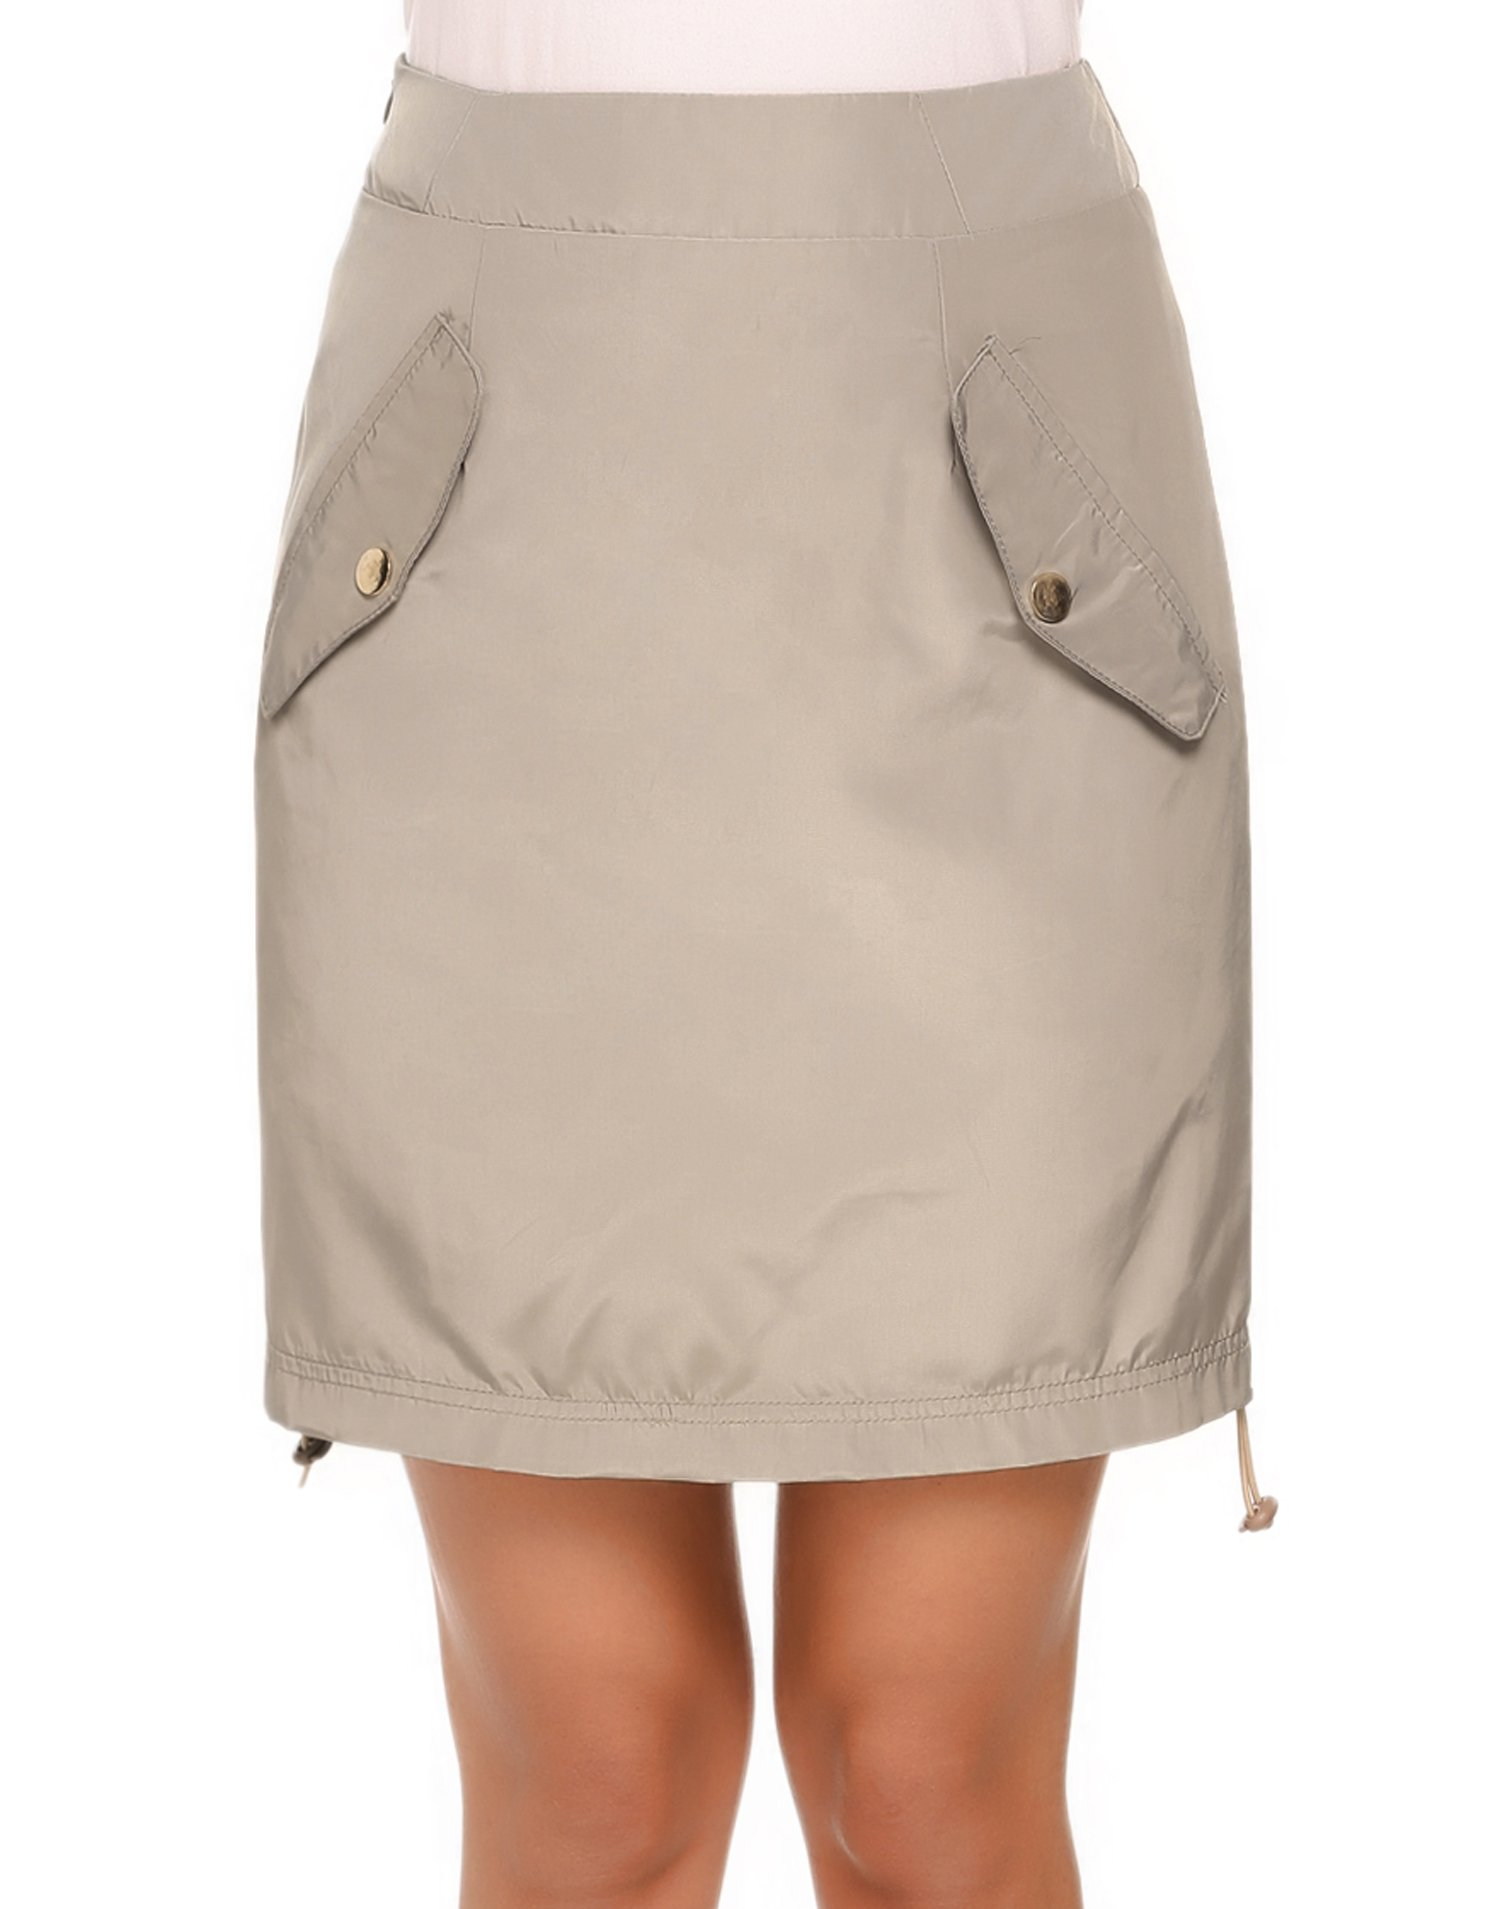 ANGVNS Women's Anytime Casual Skort Skirt with Free Side Shirring (Beige)